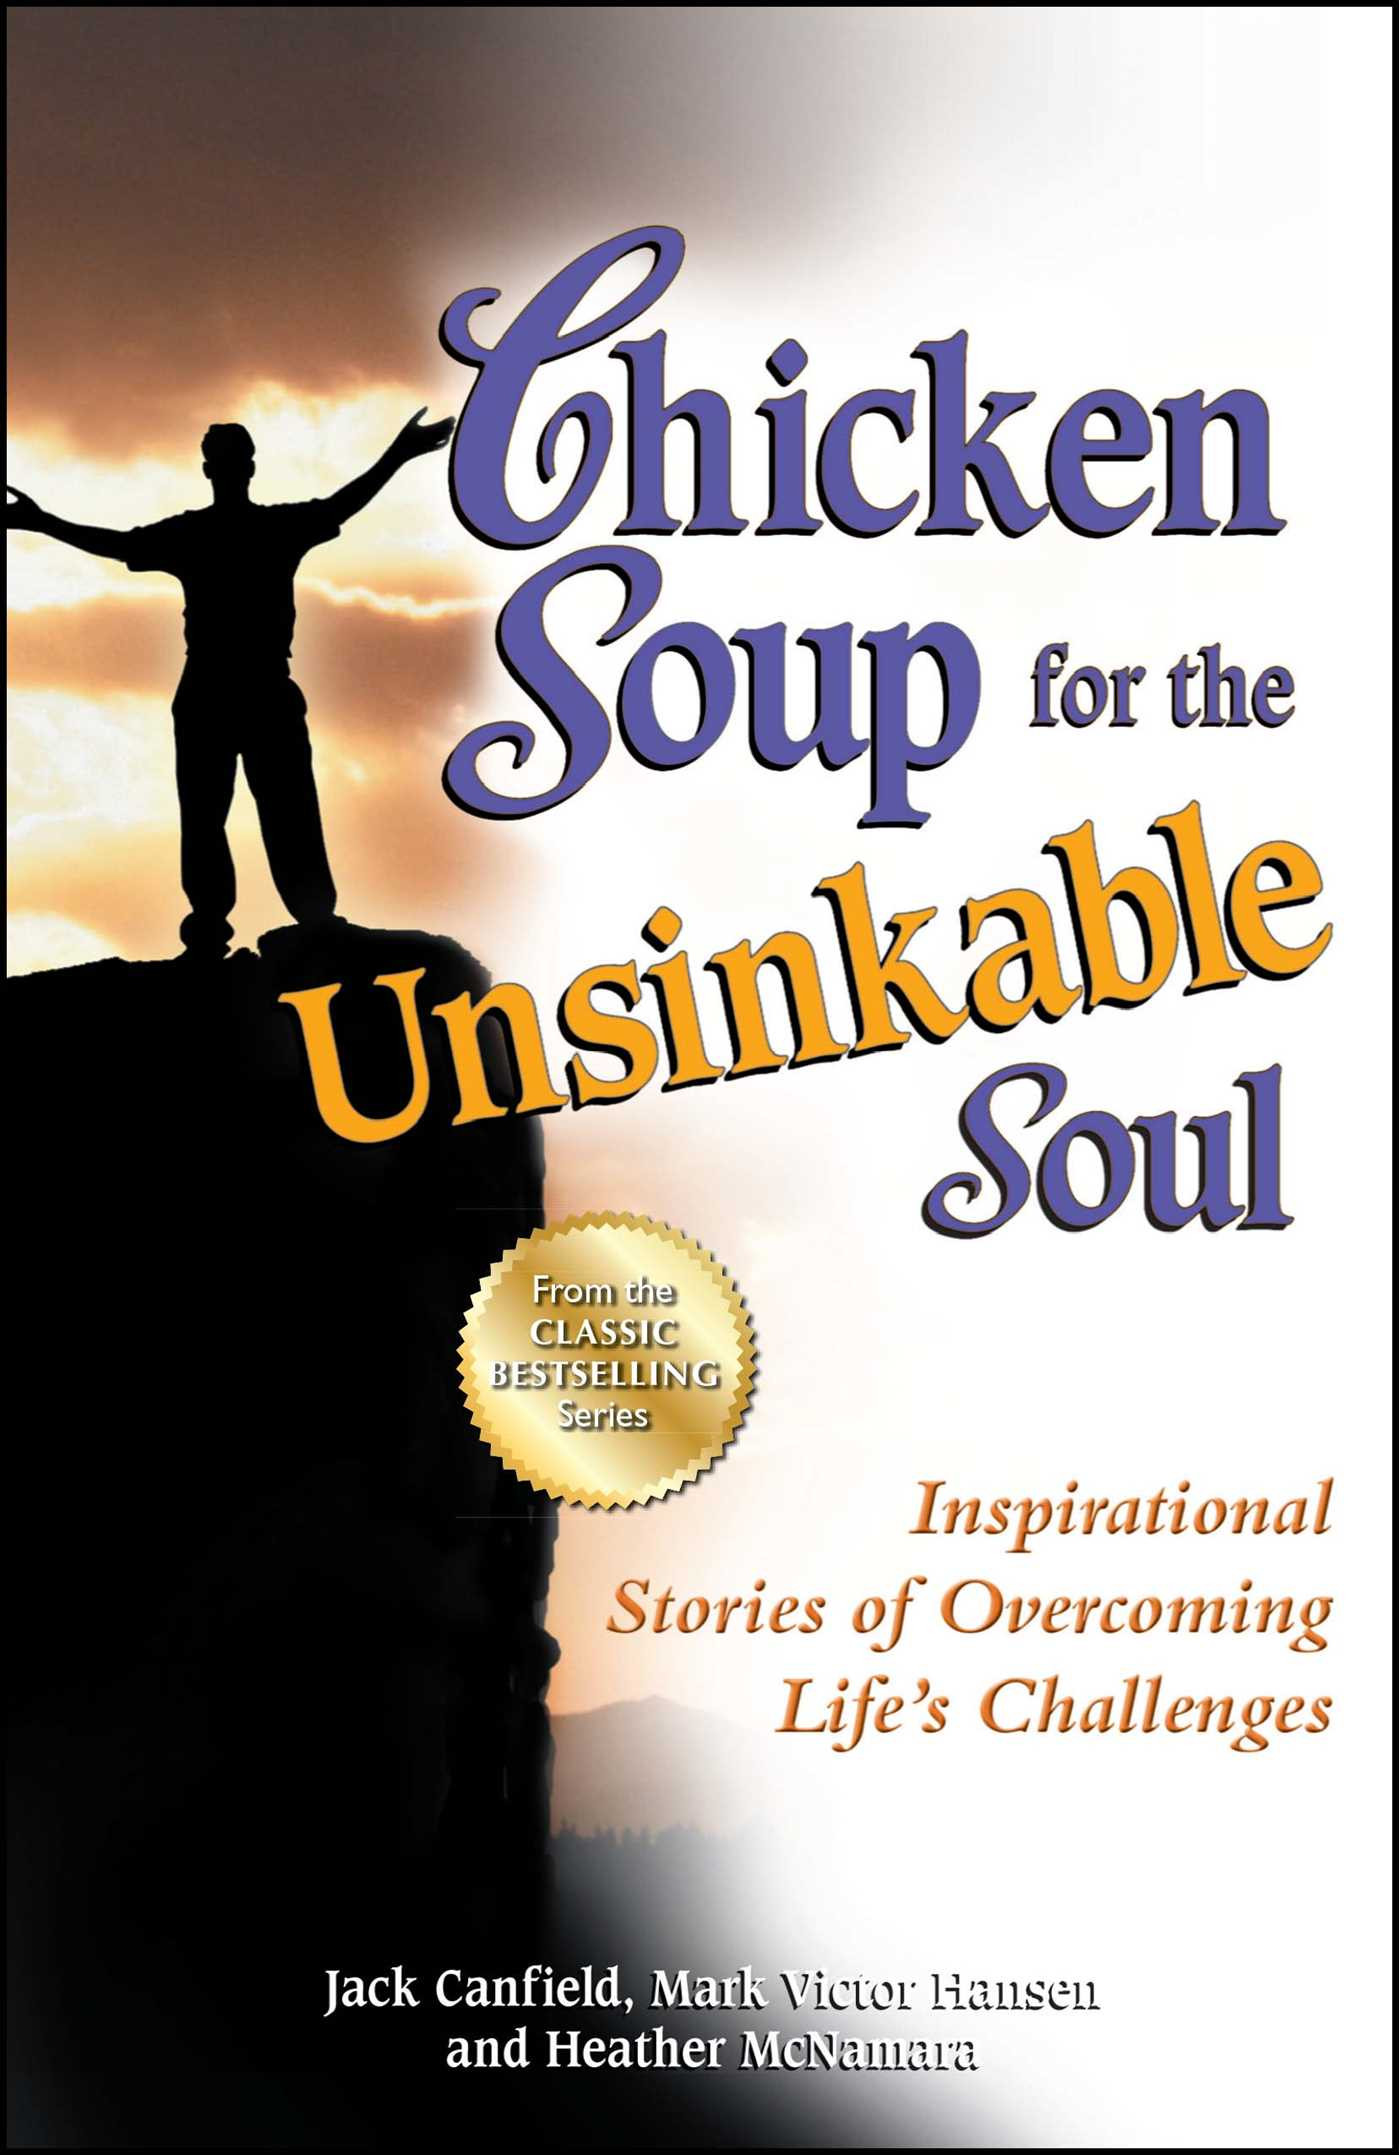 Chicken Soup For The Soul Books  Chicken Soup for the Unsinkable Soul